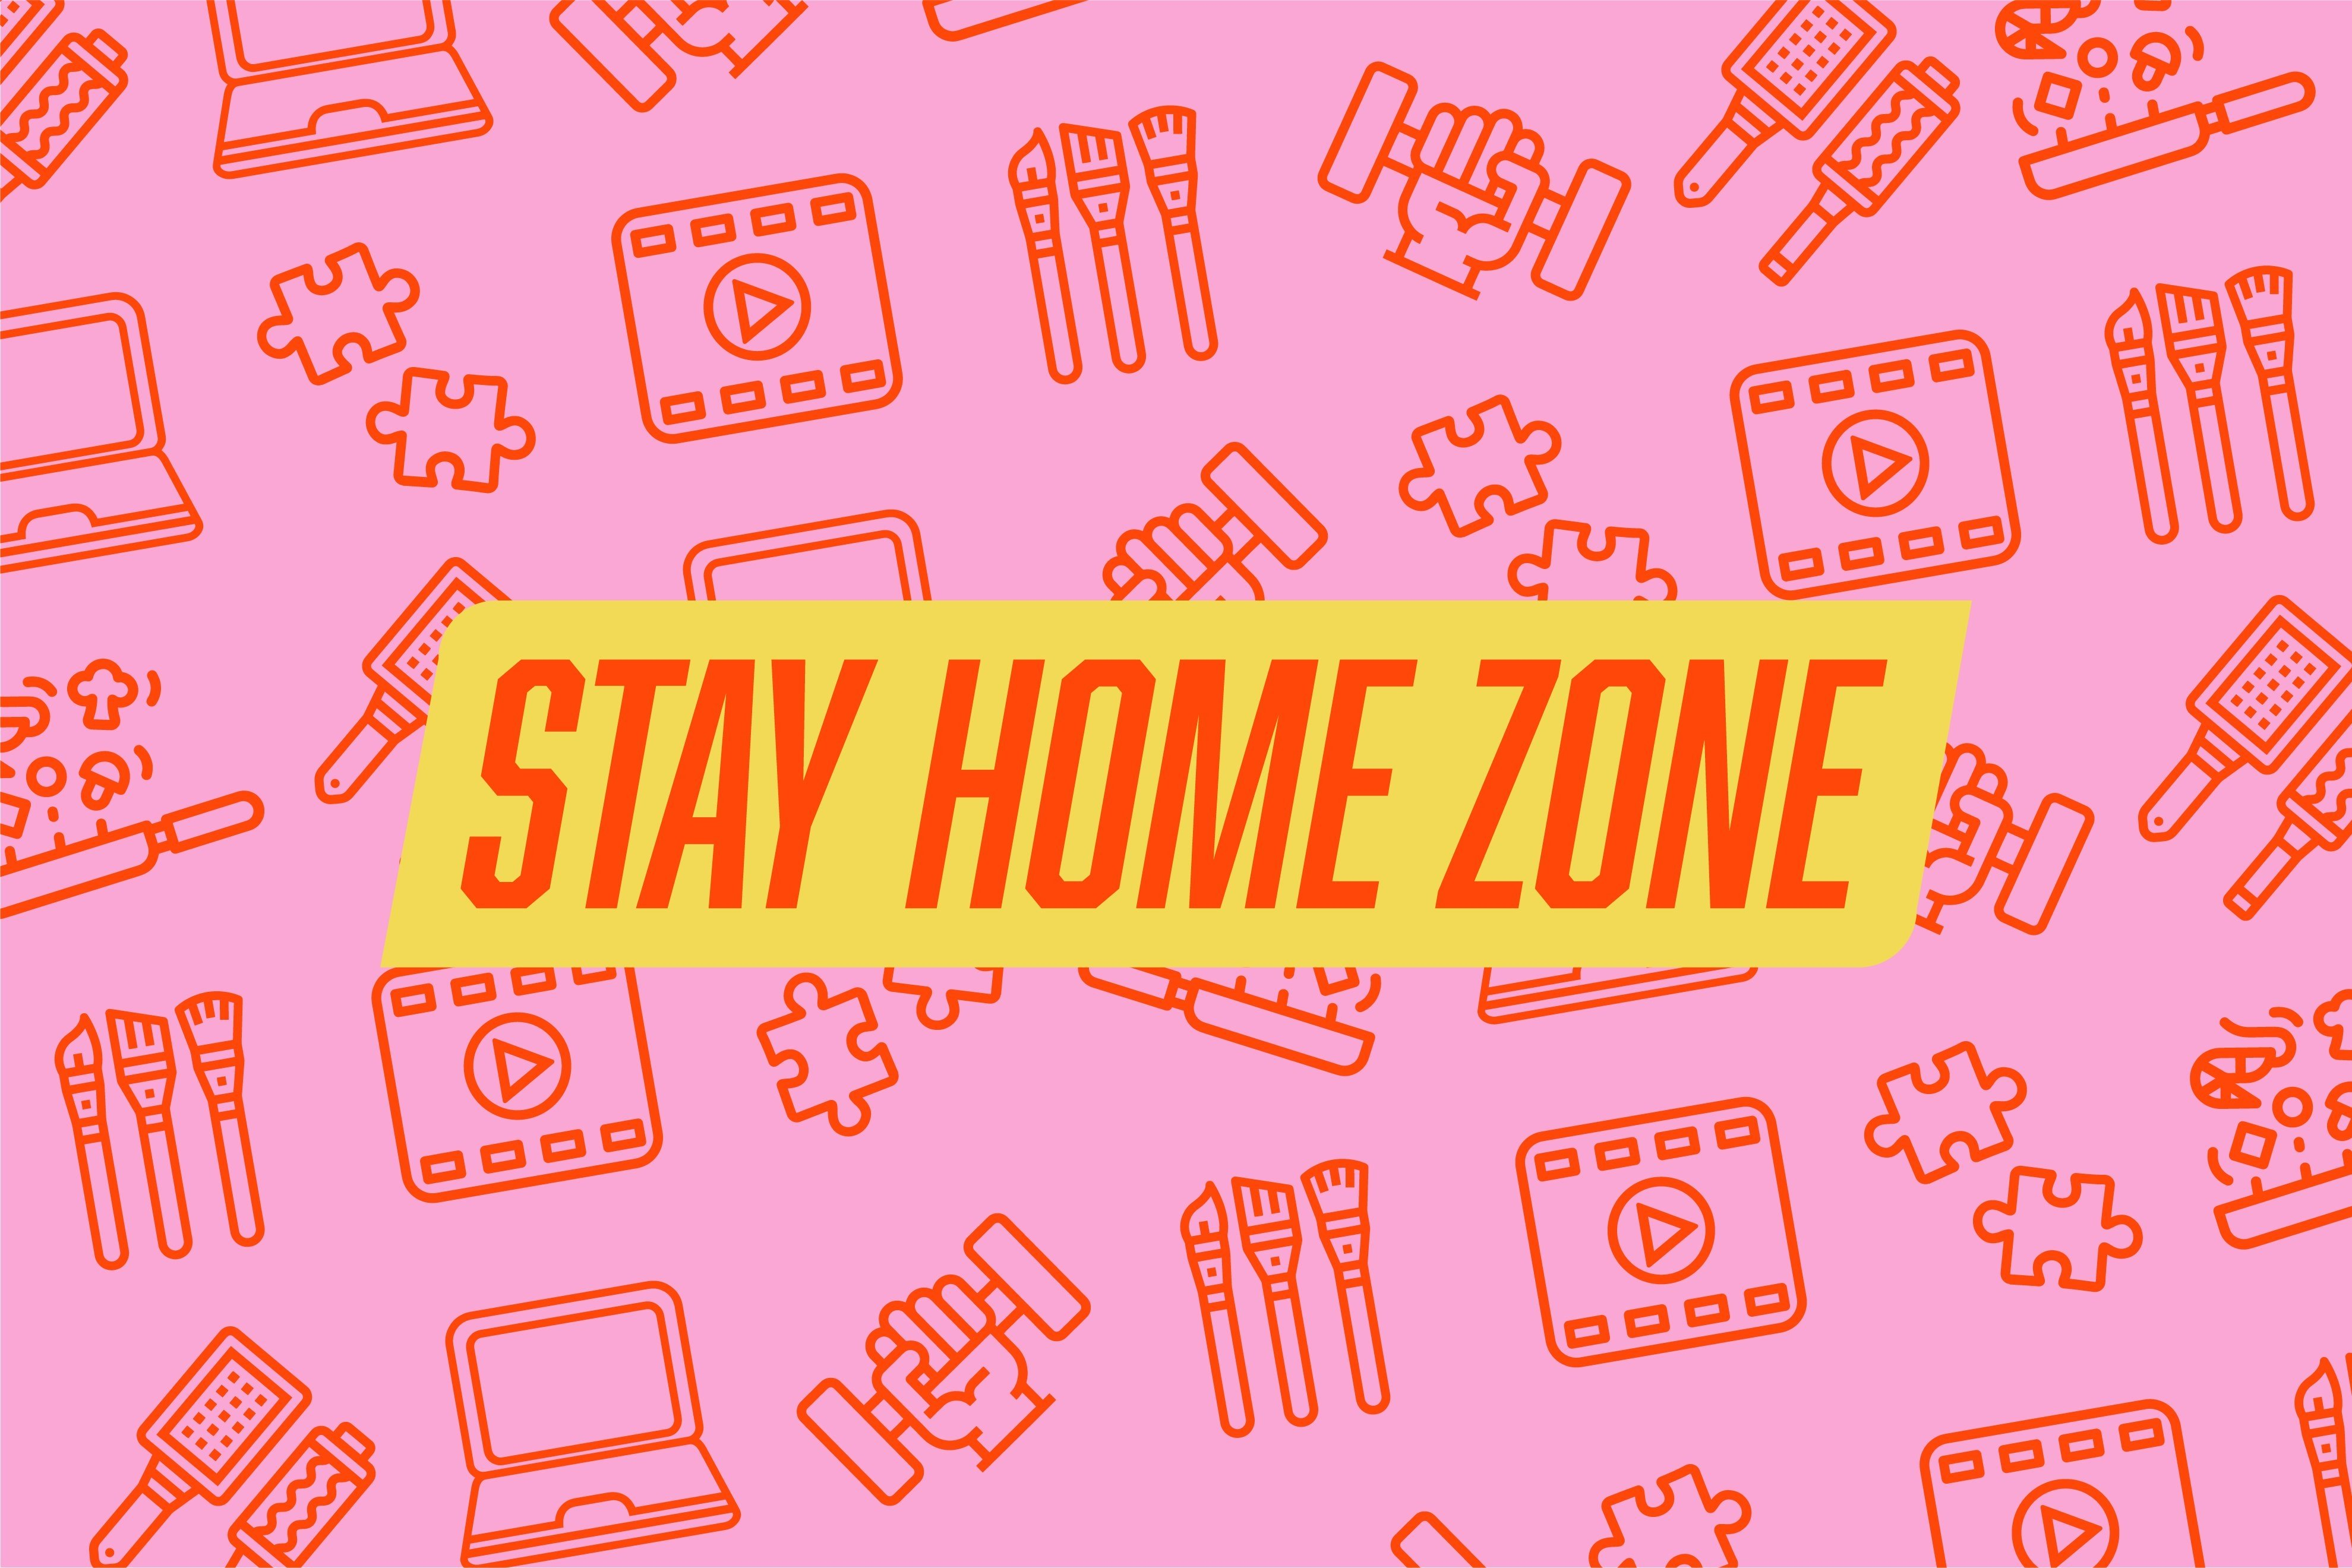 Stay Home Zone